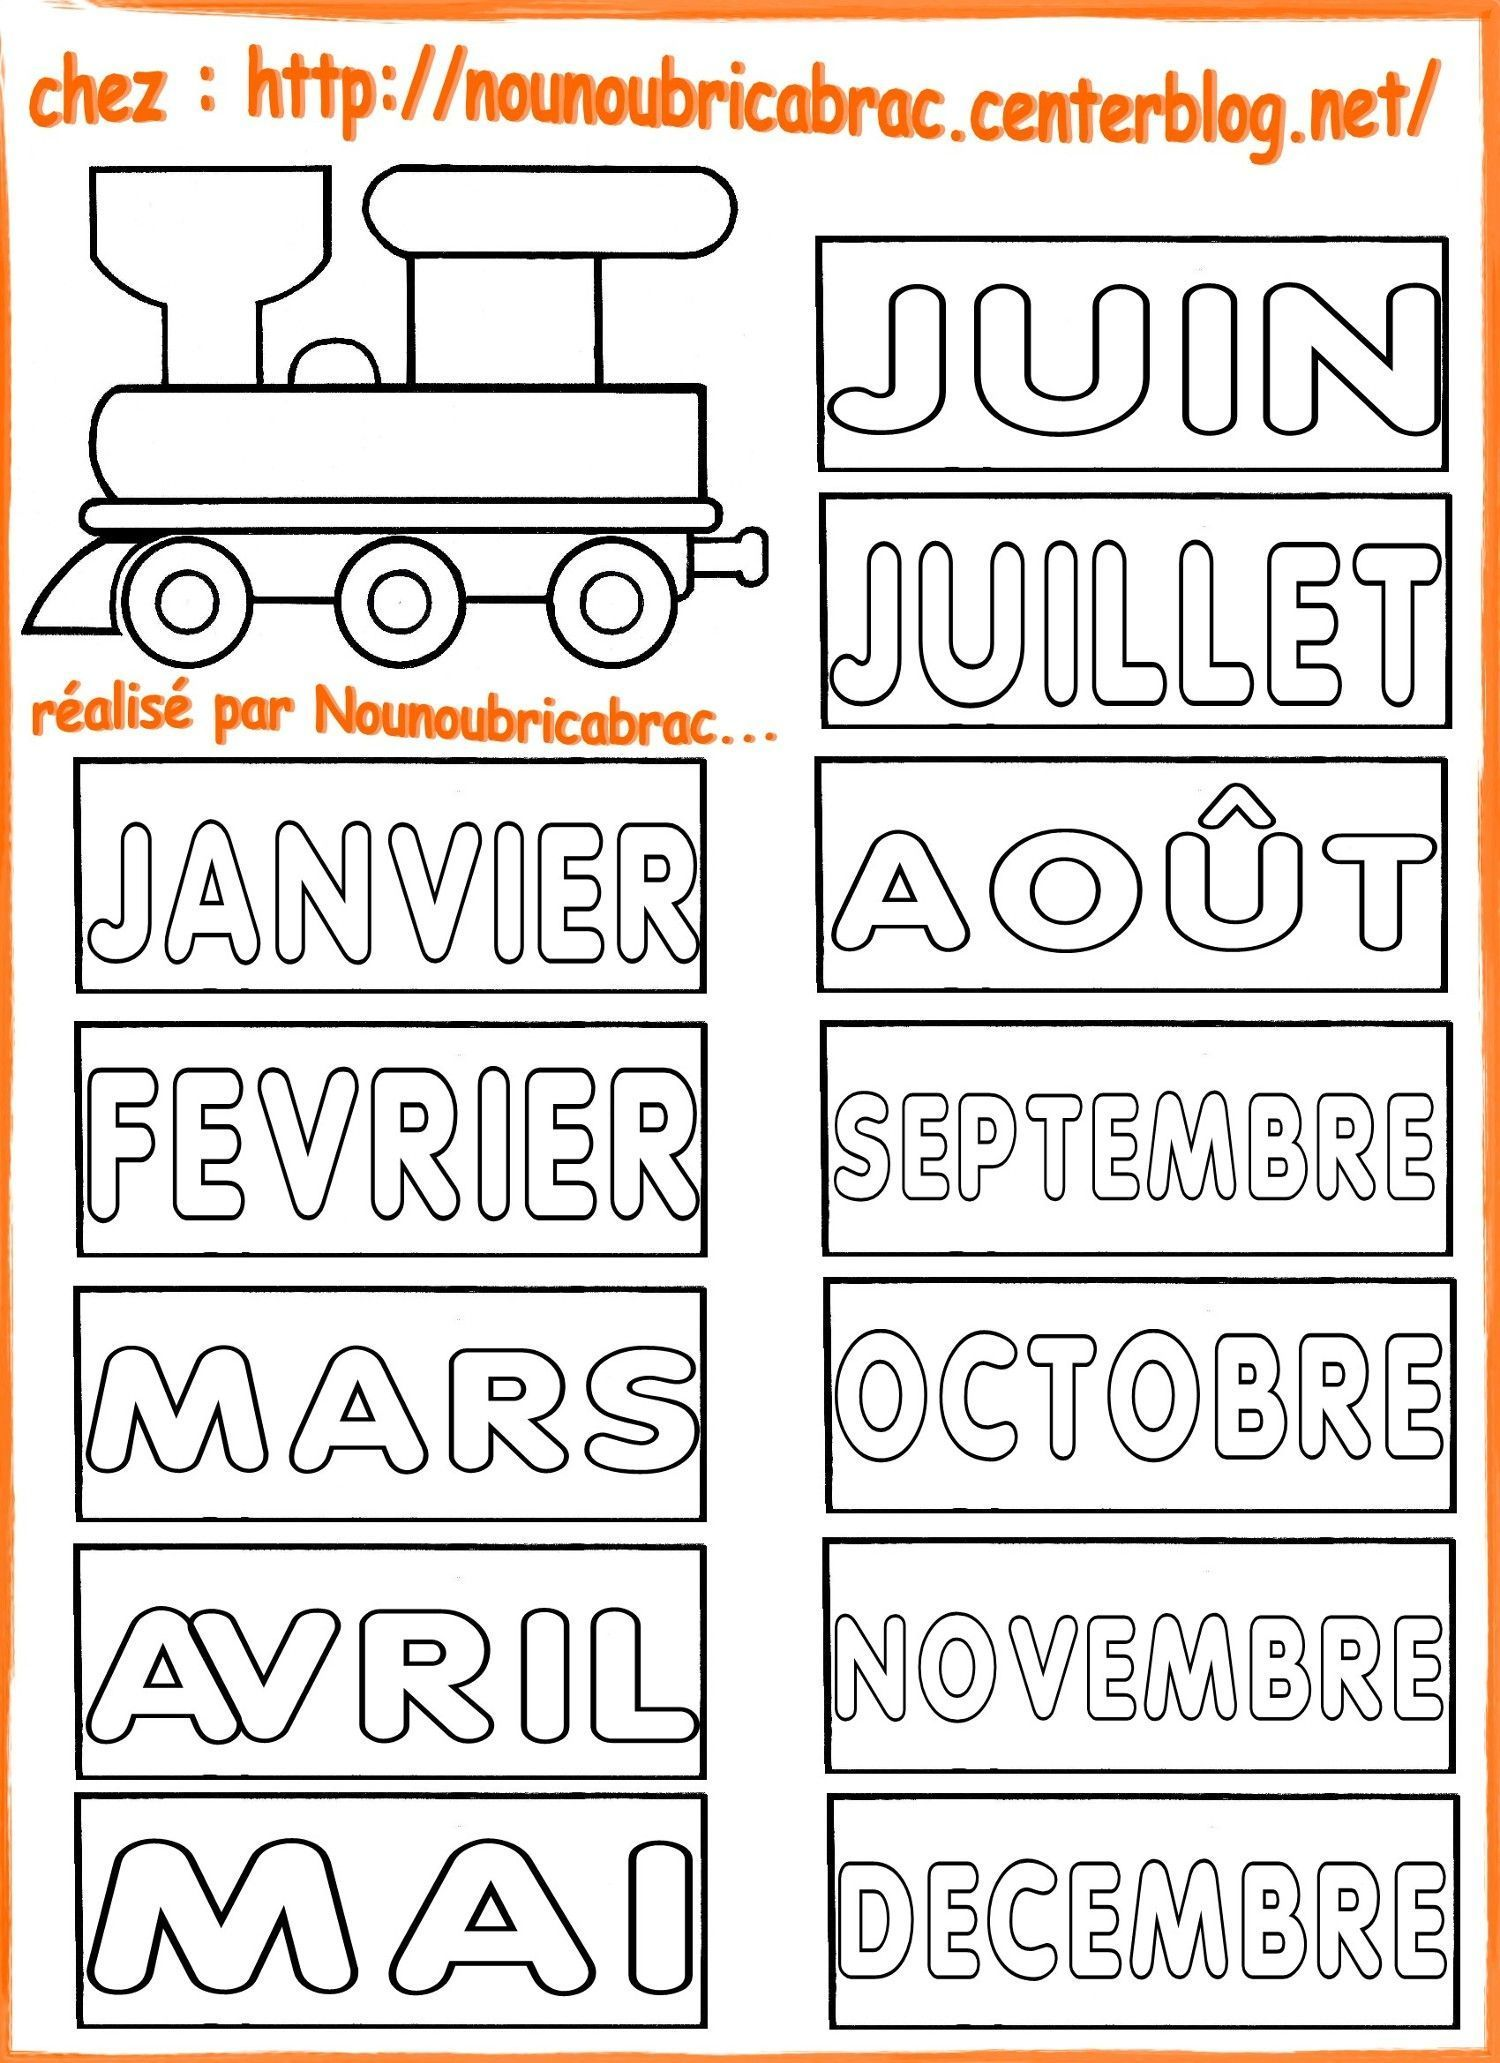 Calendrier pour apprendre ludiquement... la locomotive et les mois